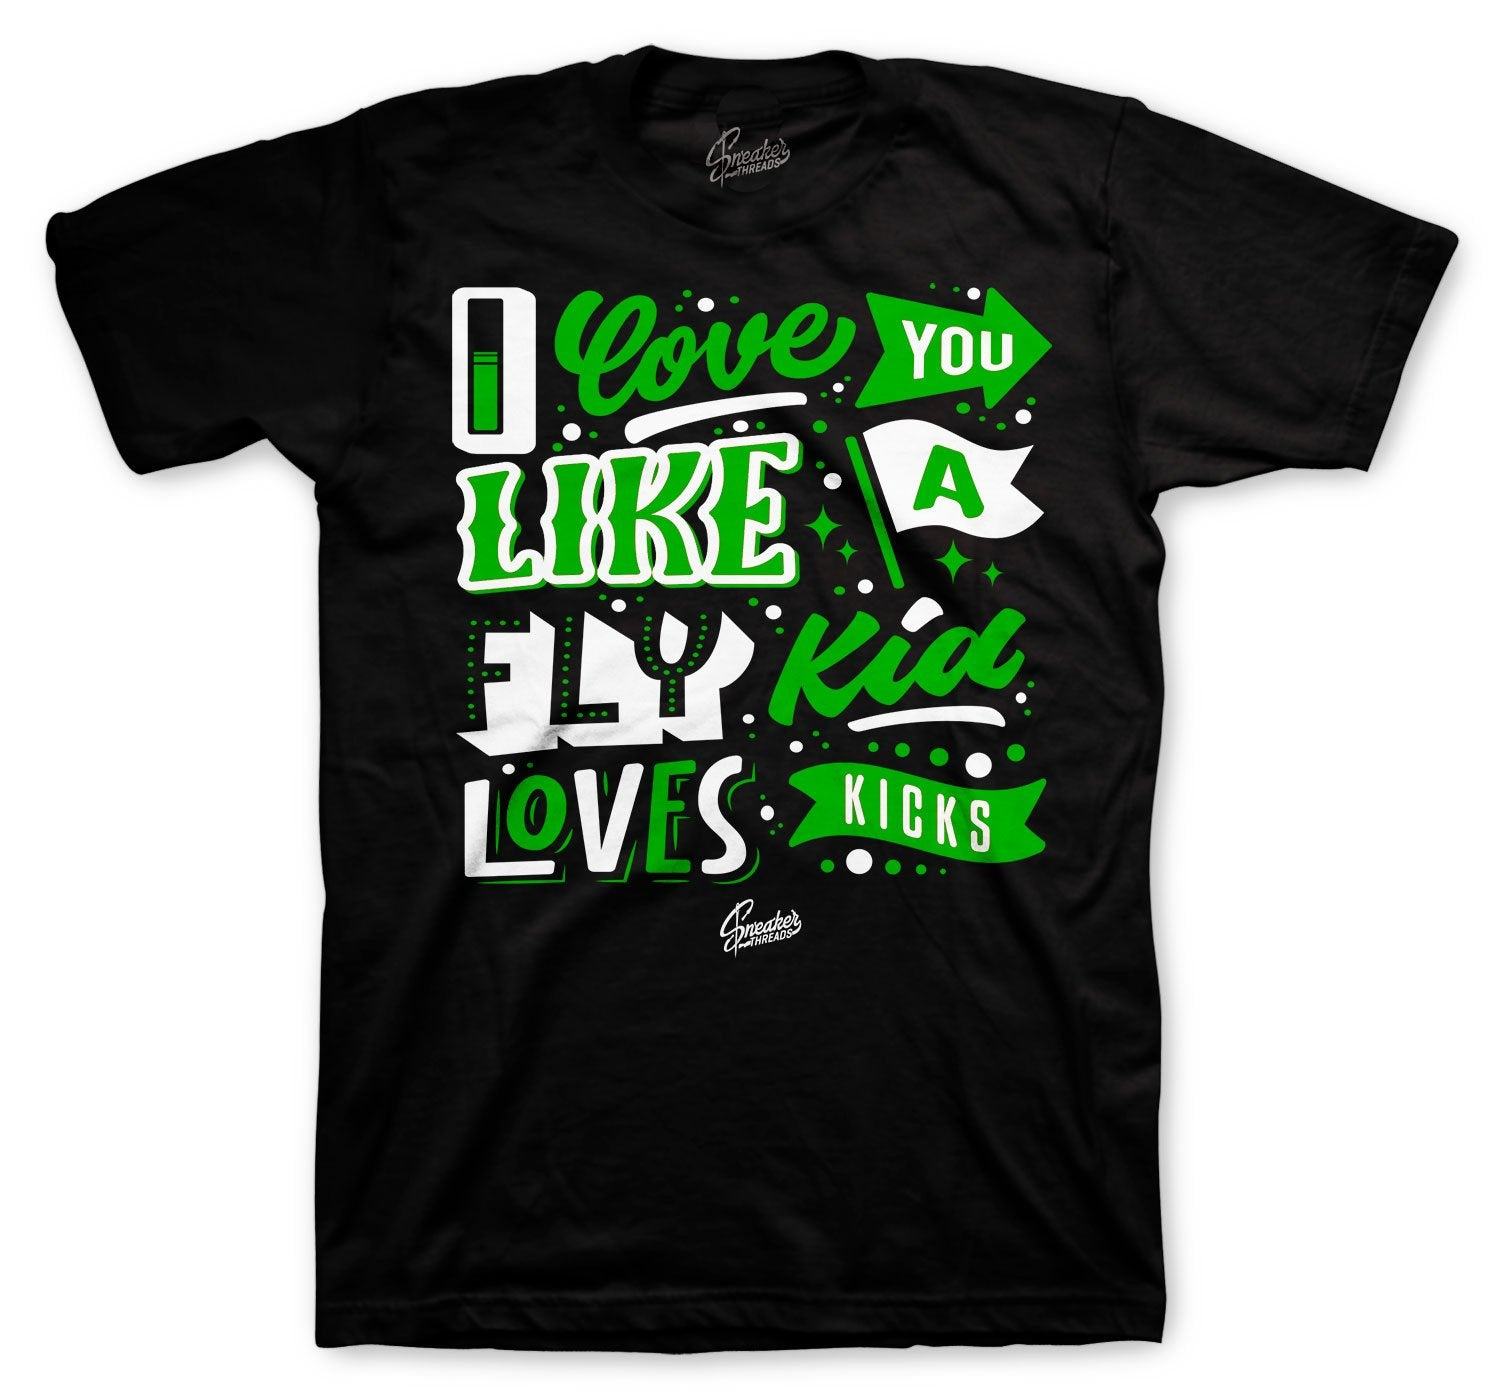 Pine Green Jordan 1 sneaker collection has matching t shirt collection